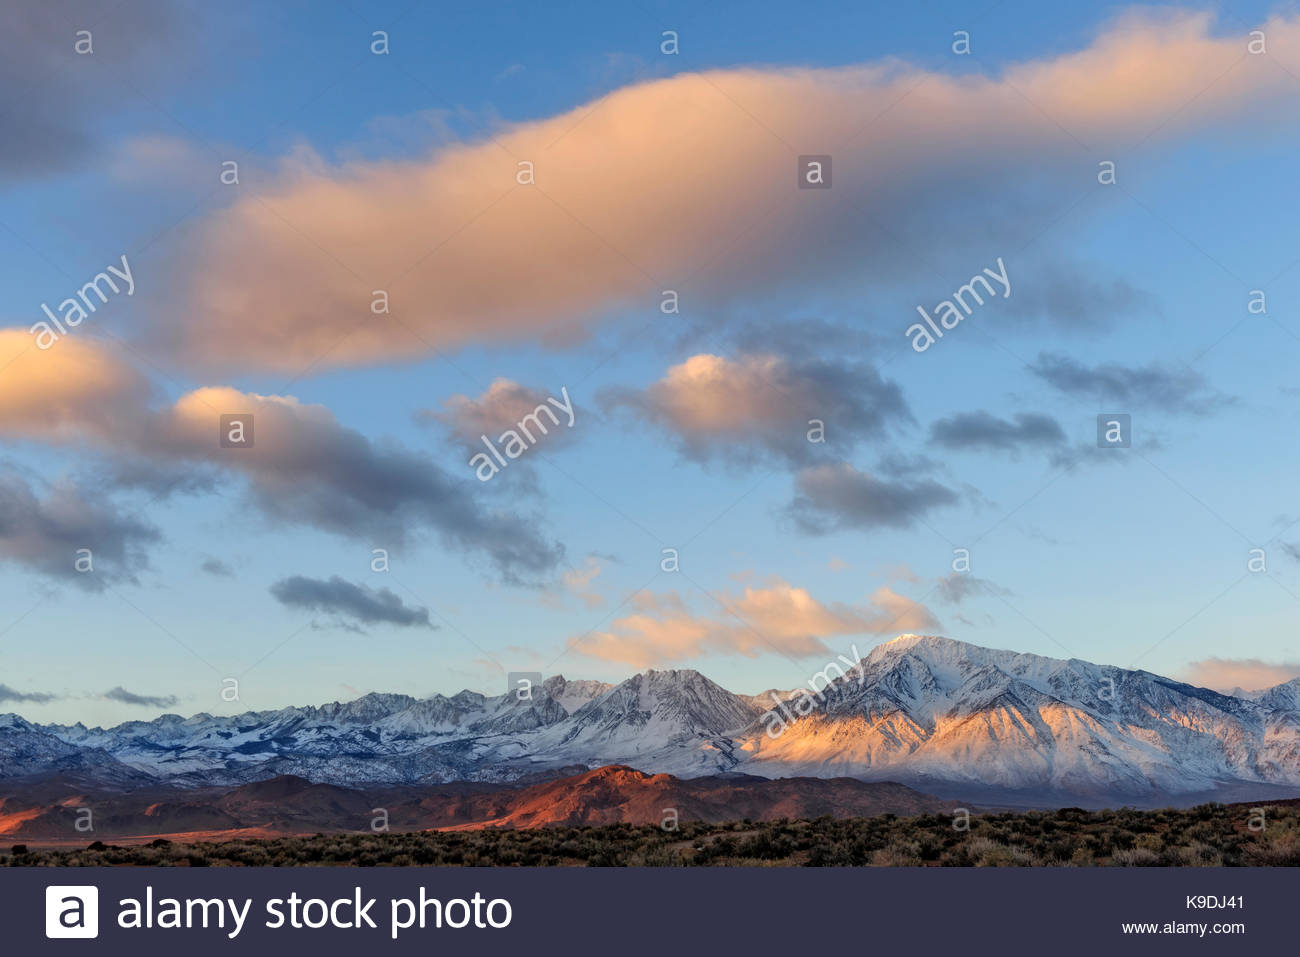 Sierra Nevada Range from the Volcanic Tablelands, Inyo National Forest, Inyo County, Caifornia - Stock Image